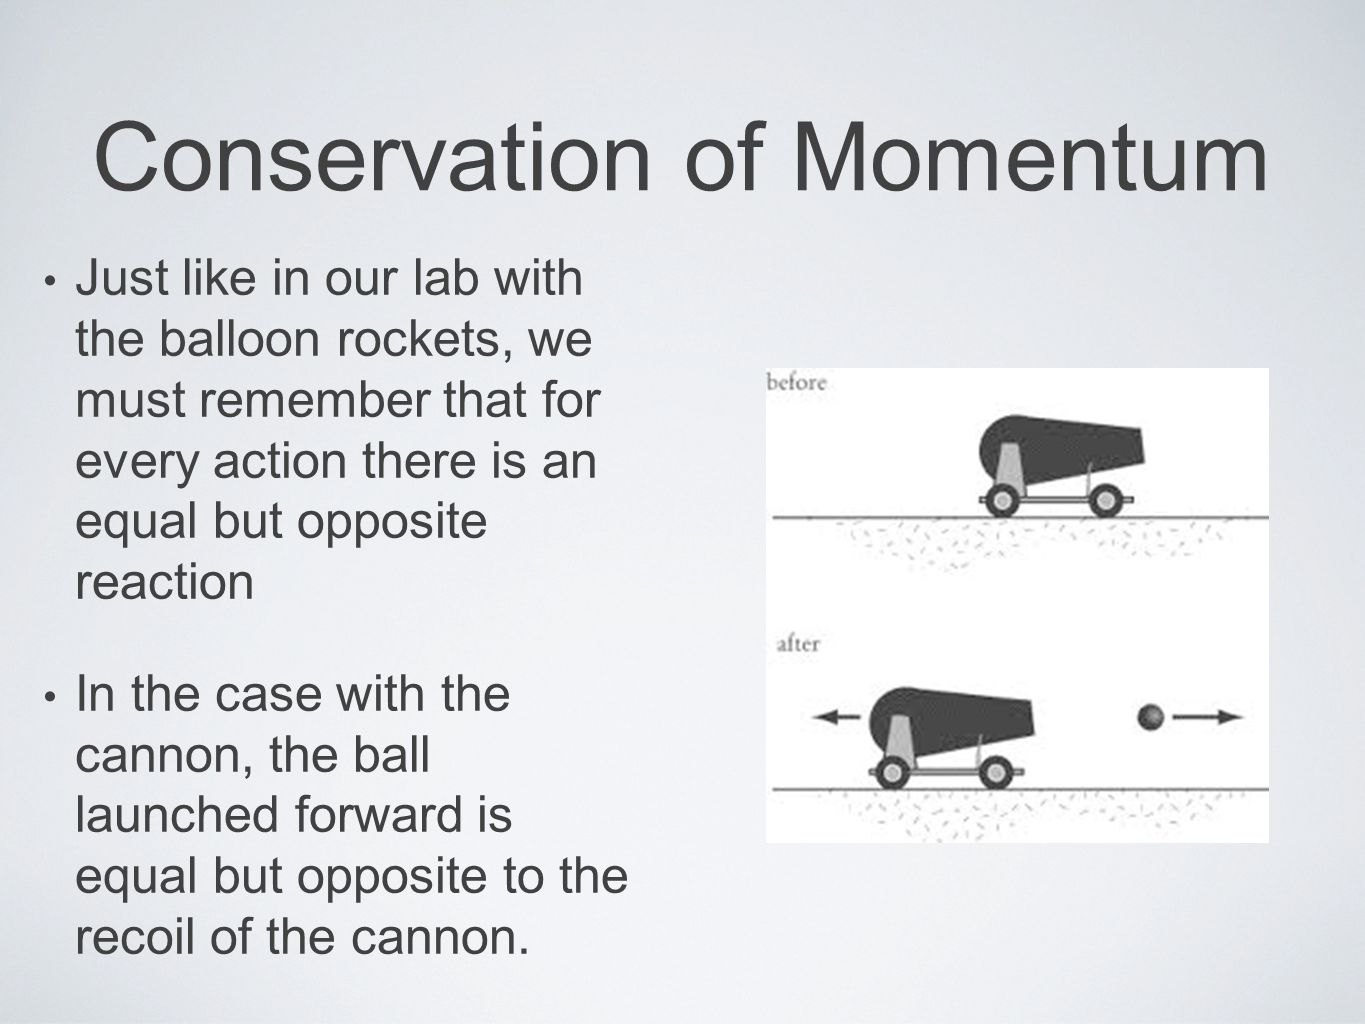 Conservation of Momentum Just like in our lab with the balloon rockets, we must remember that for every action there is an equal but opposite reaction In the case with the cannon, the ball launched forward is equal but opposite to the recoil of the cannon.